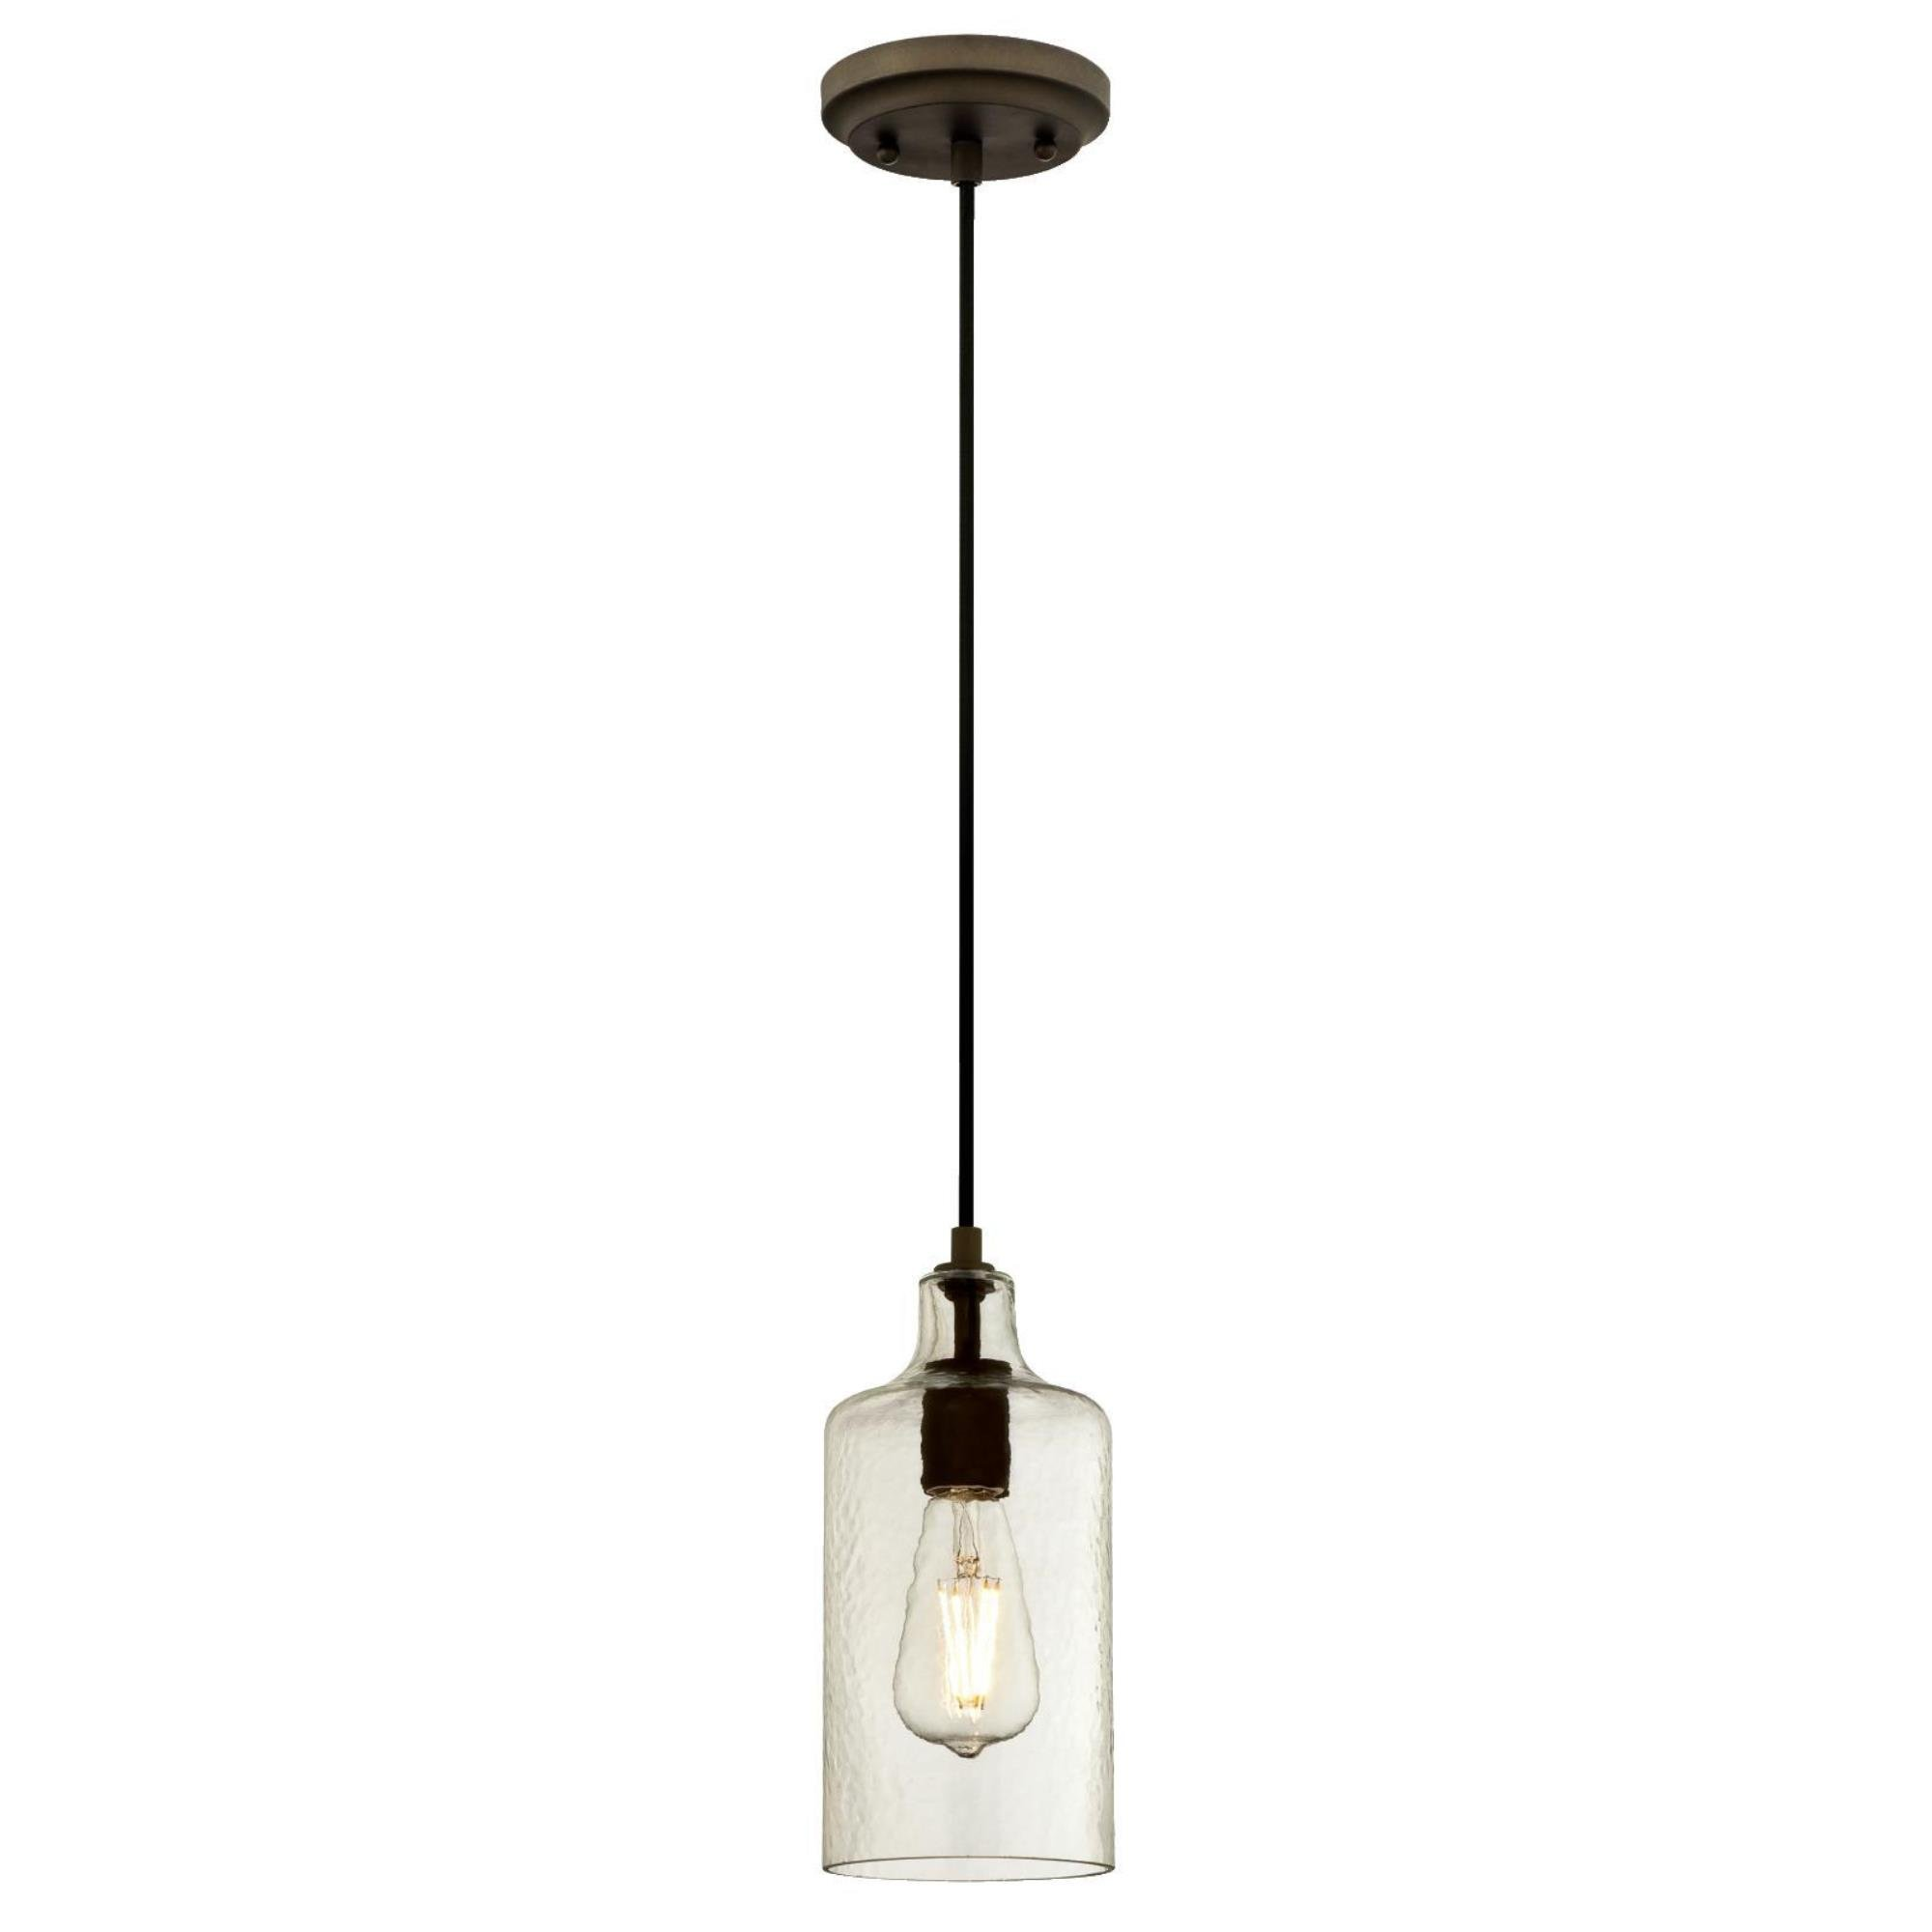 Westinghouse 6328900 One-Light Indoor Mini Pendant Finish with Clear Textured Glass, Oil Rubbed Bronze